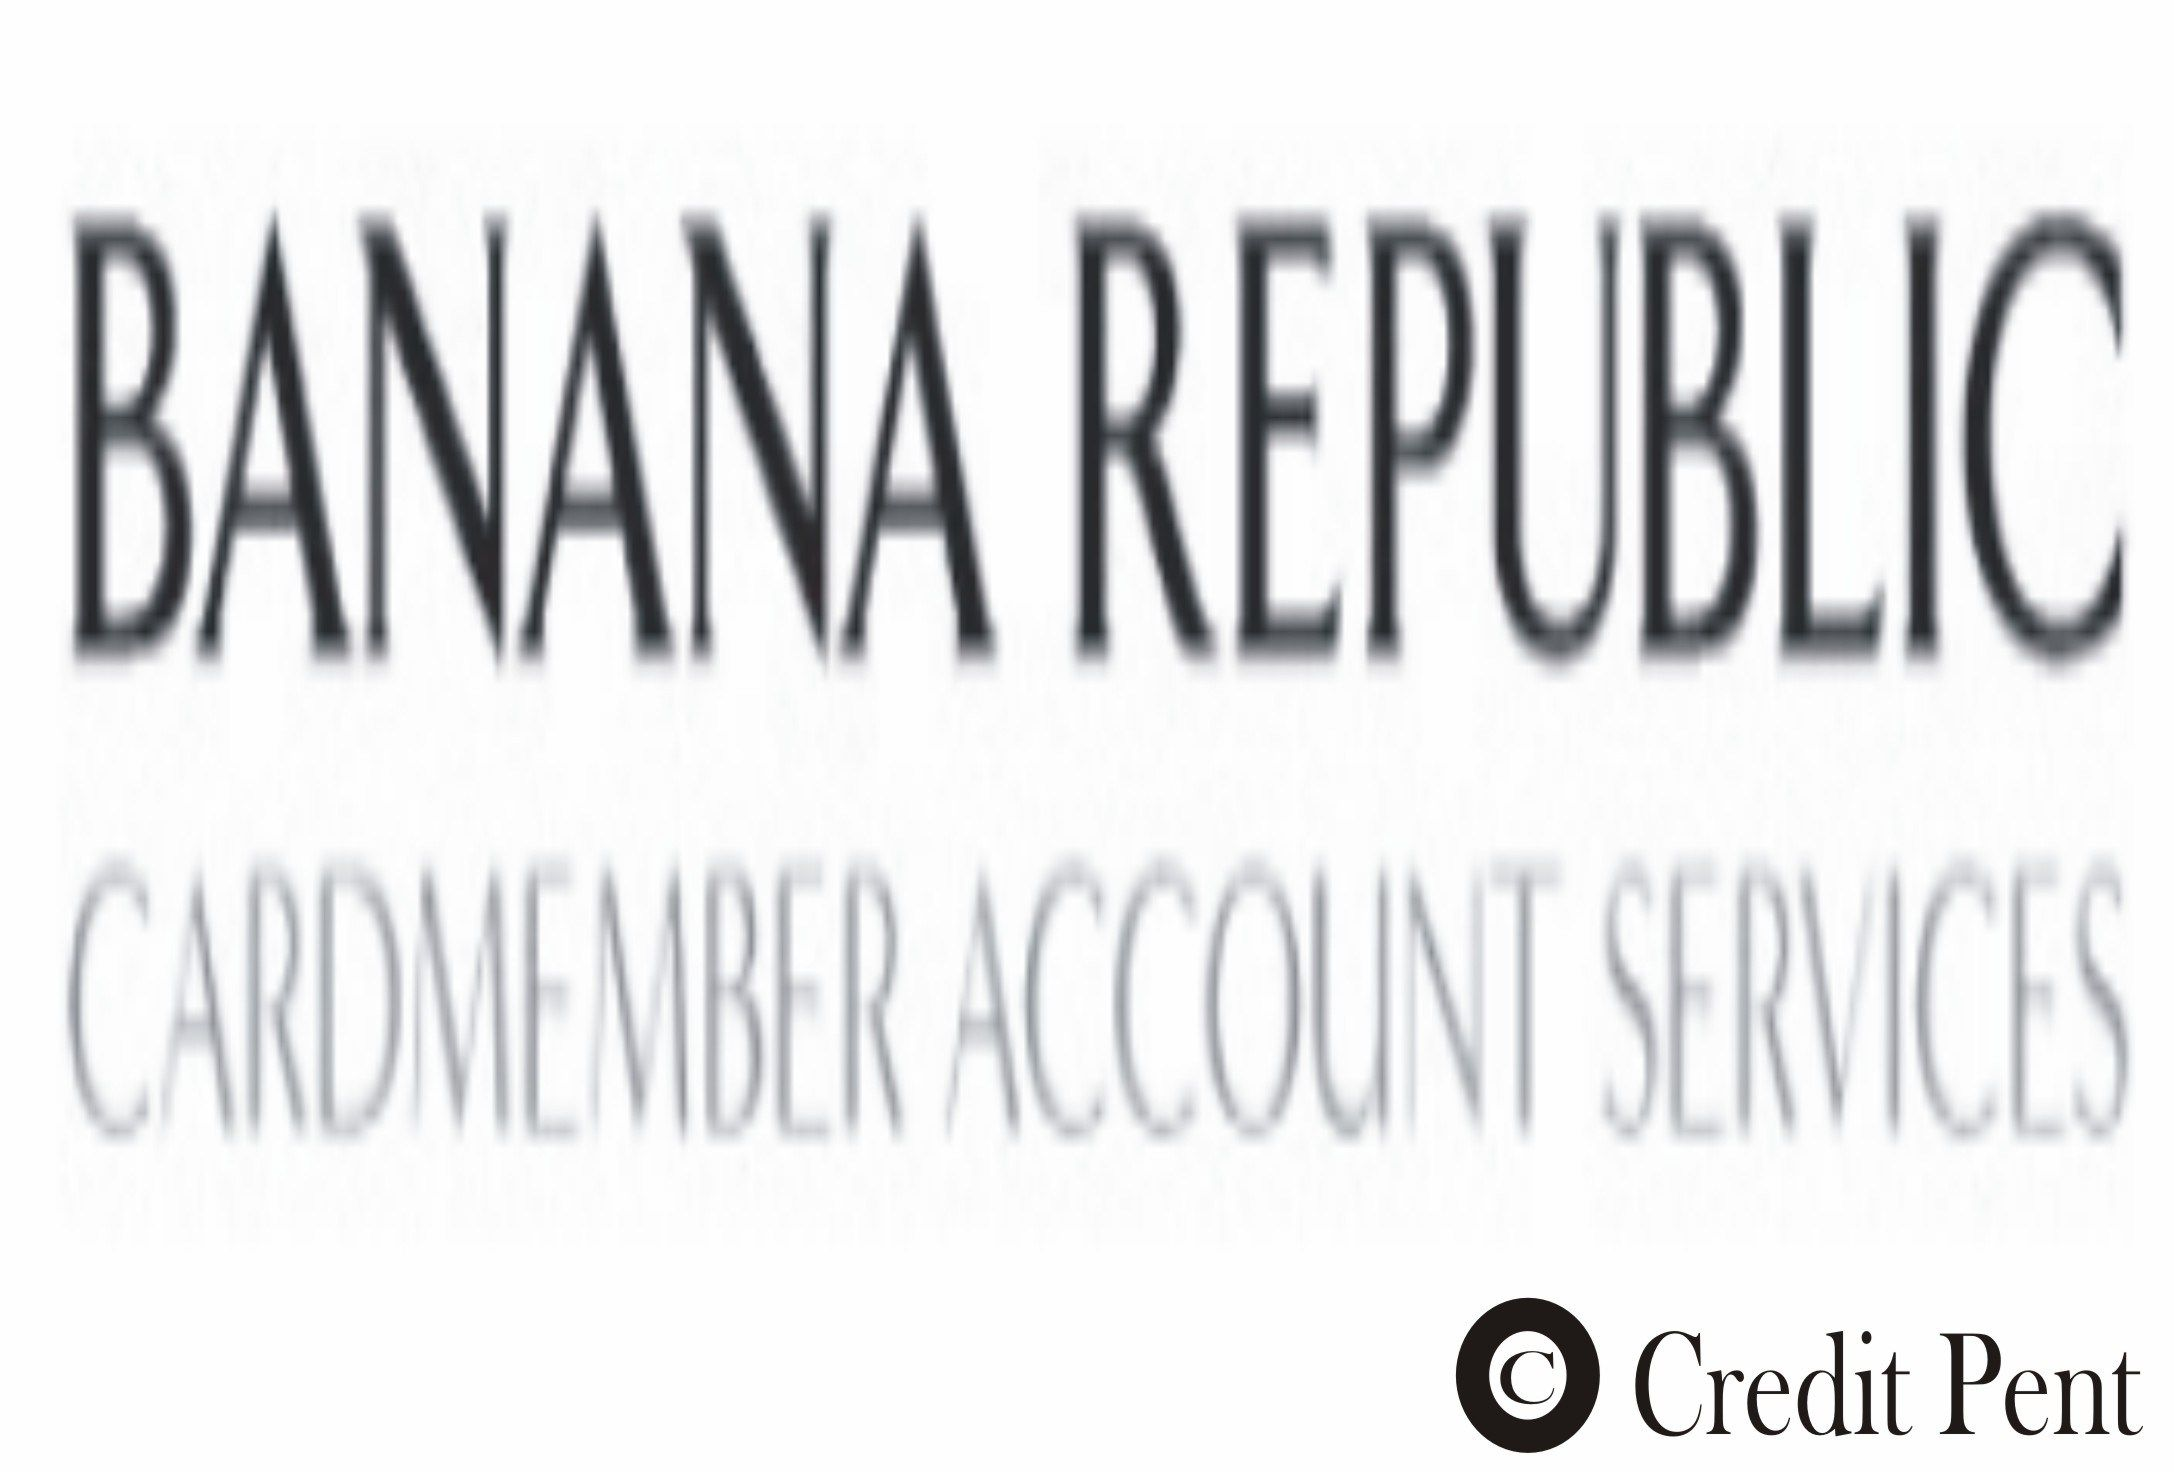 Banana Republic Credit Card Login Credit card, Republic